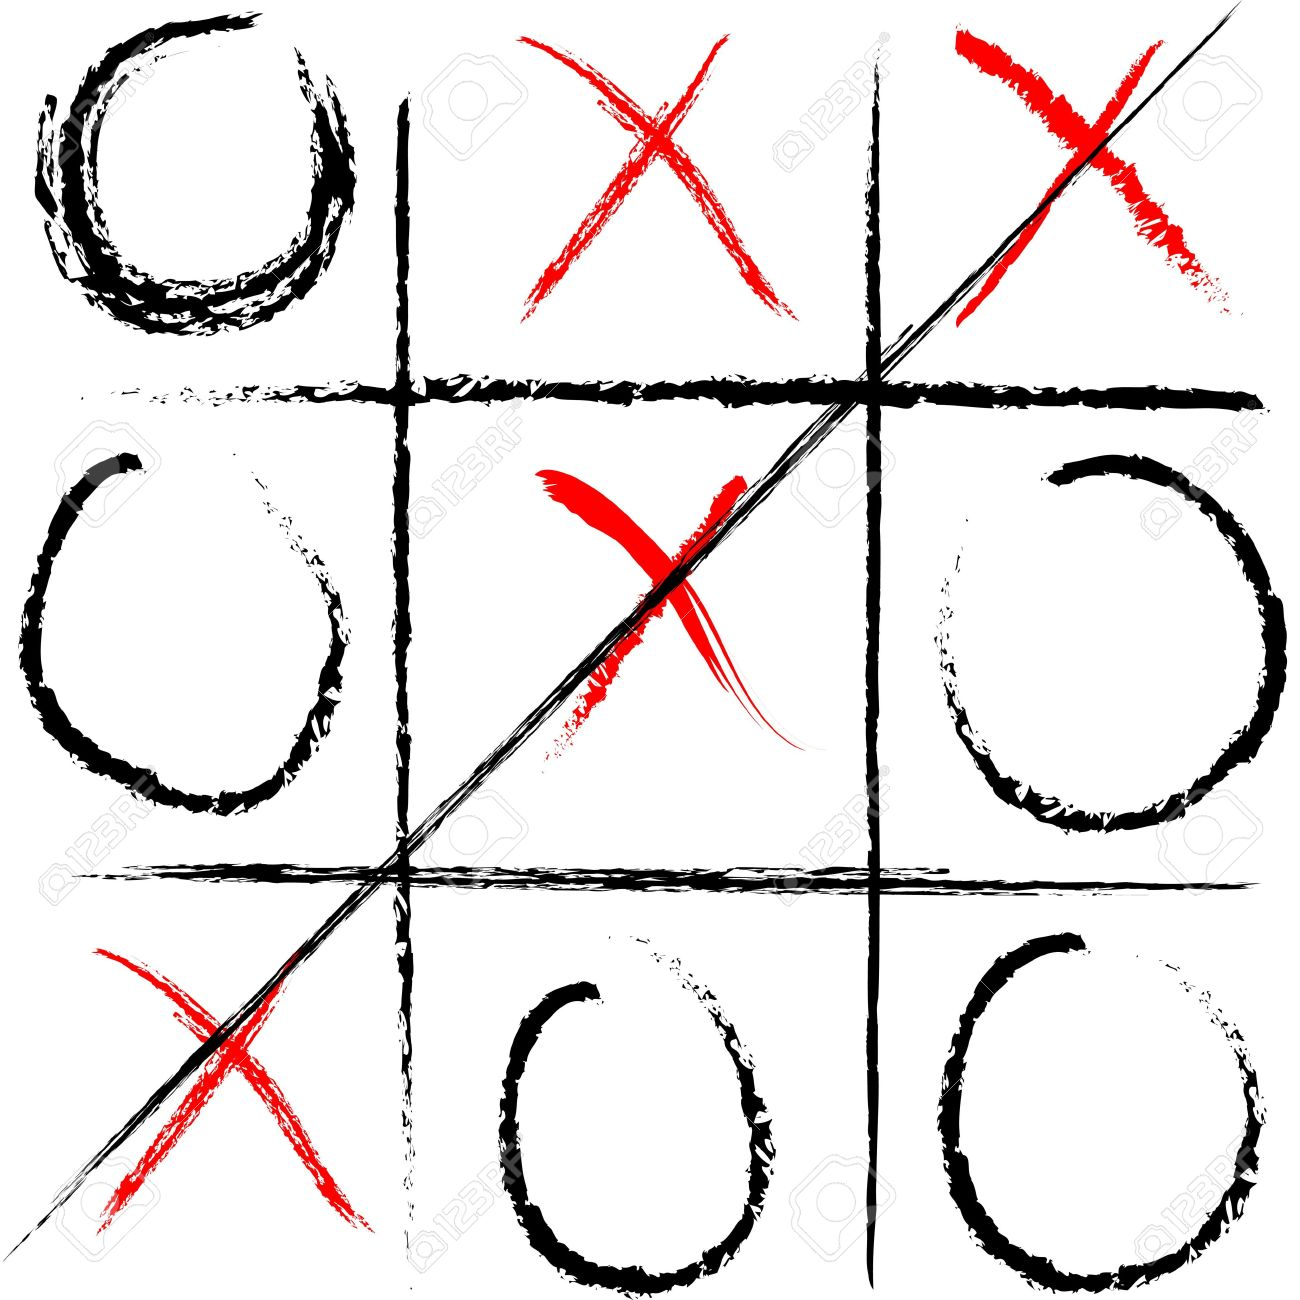 tick tack toe clipart clipground. Black Bedroom Furniture Sets. Home Design Ideas